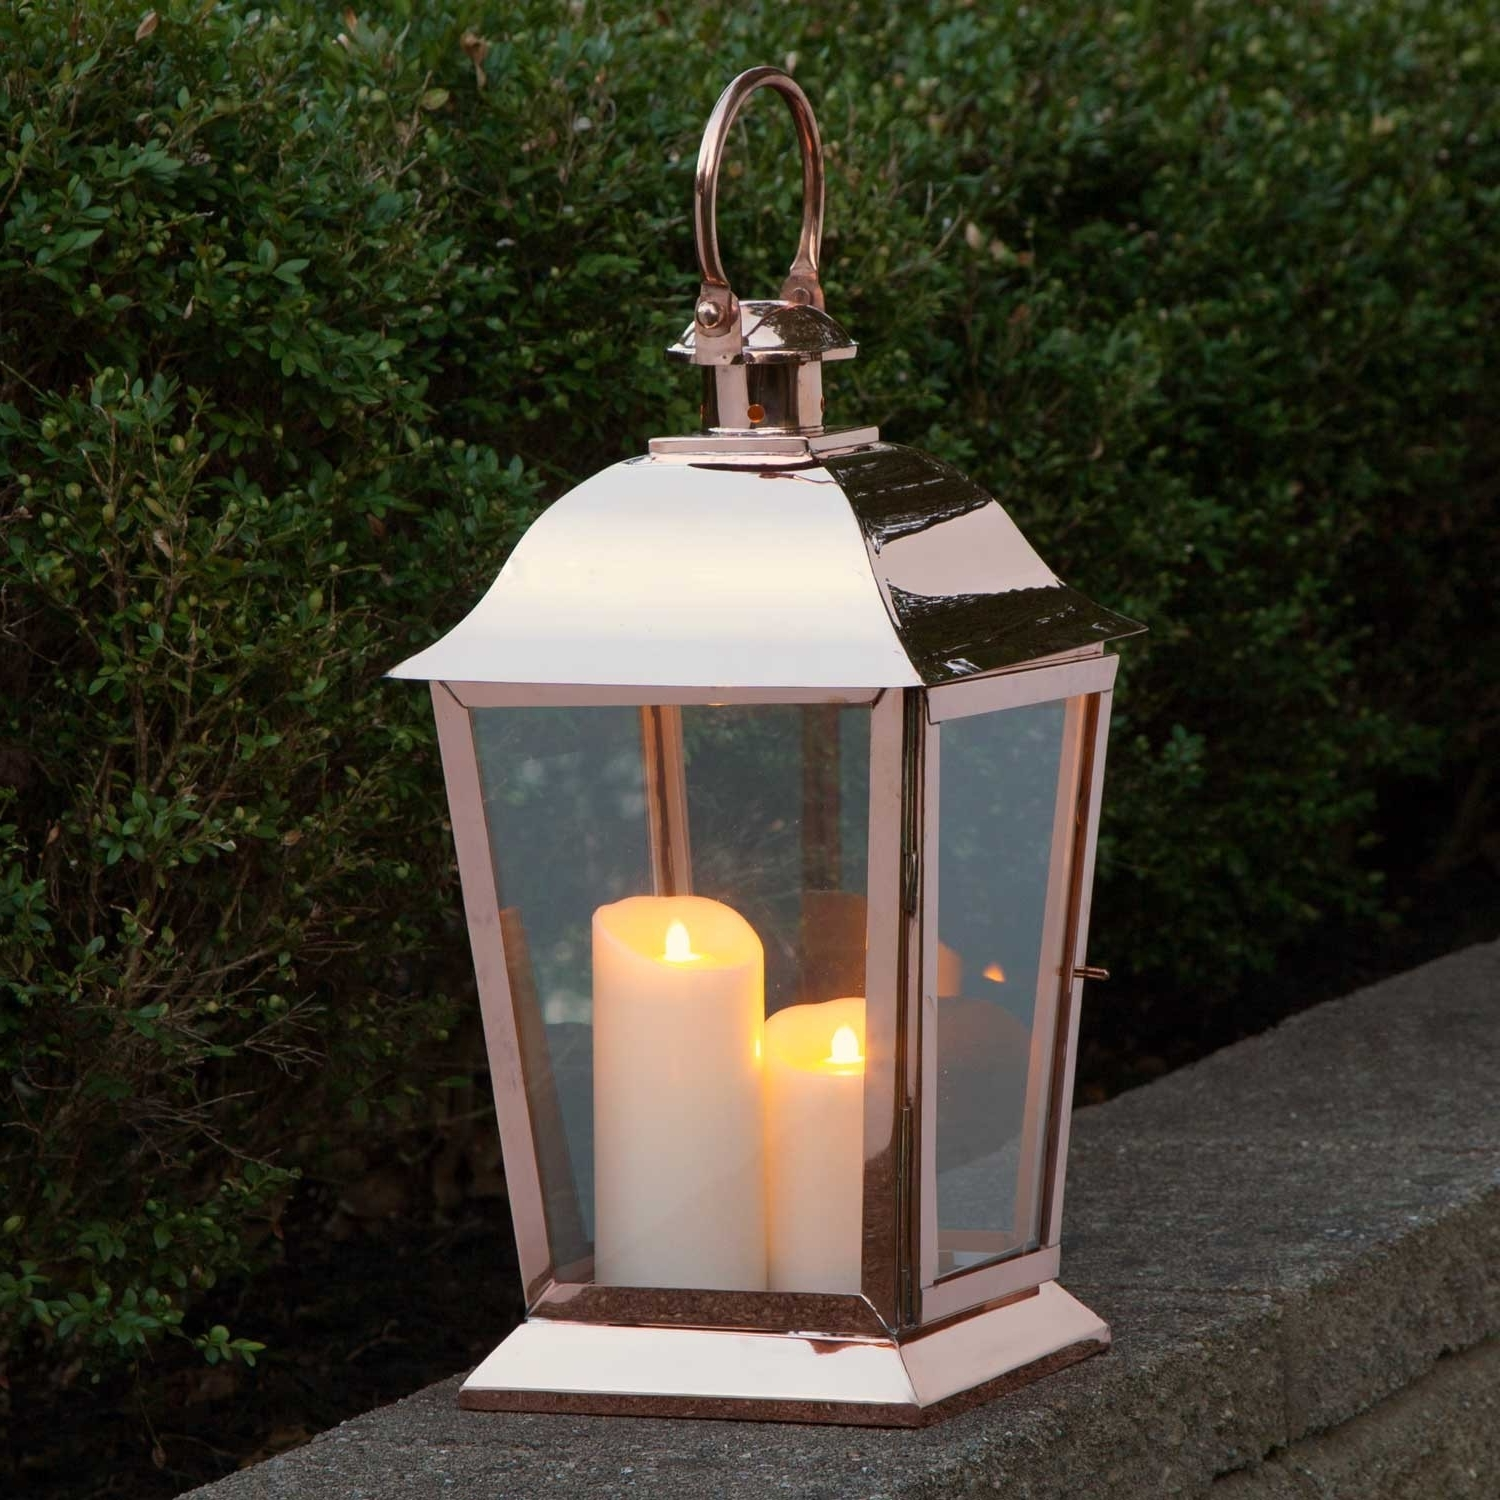 Best And Newest Outdoor Hanging Candle Lanterns Within Garden & Outdoor: Fantastic Candle Lanterns For Outdoor Lighting (View 4 of 20)